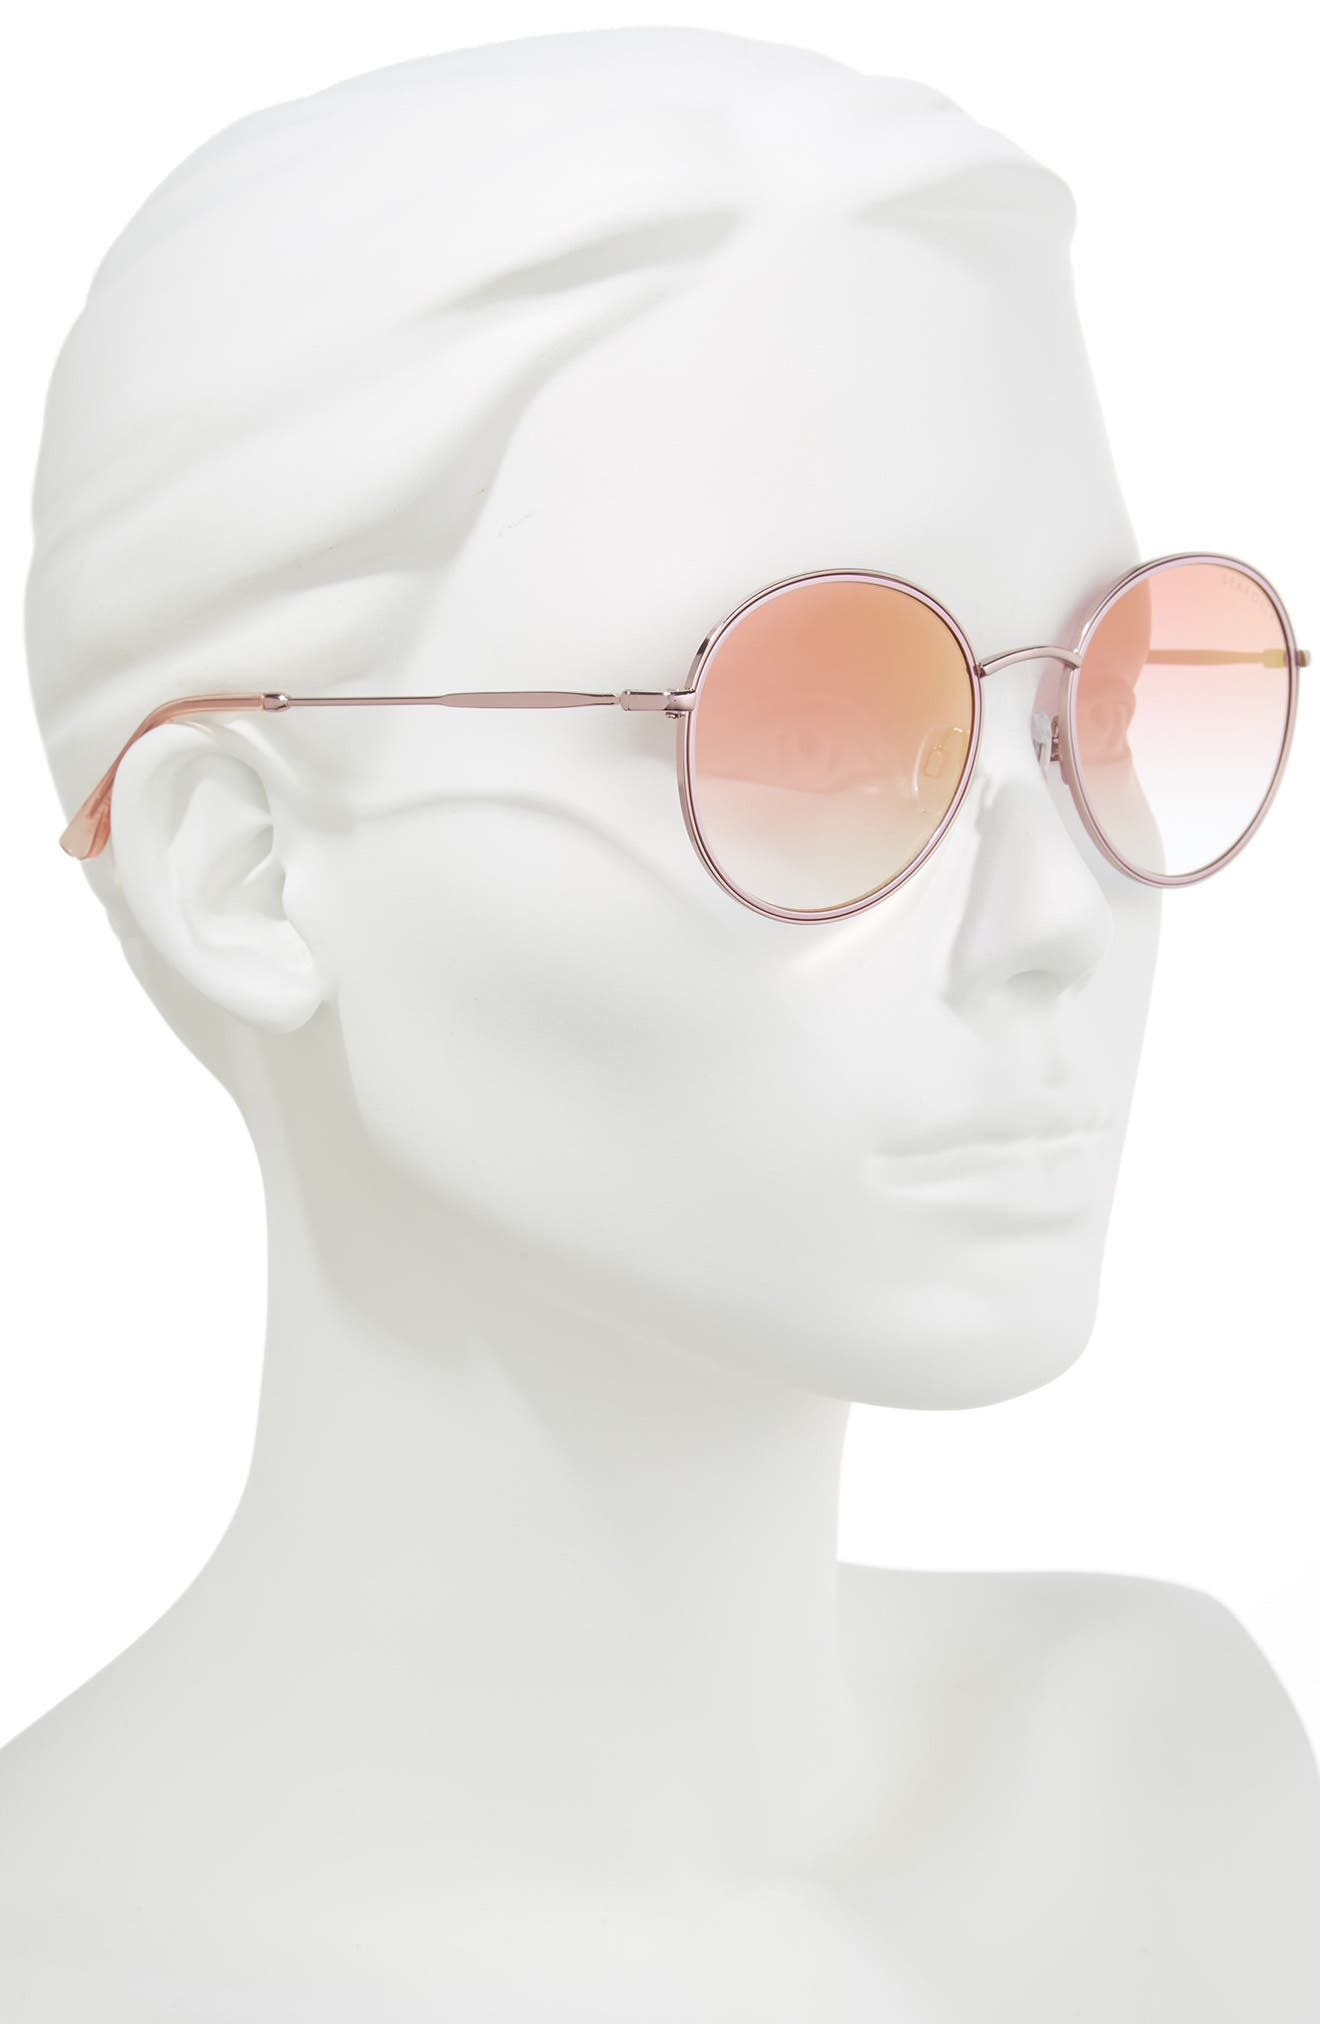 SEAFOLLY,                             Coogee 54mm Round Sunglasses,                             Alternate thumbnail 2, color,                             611